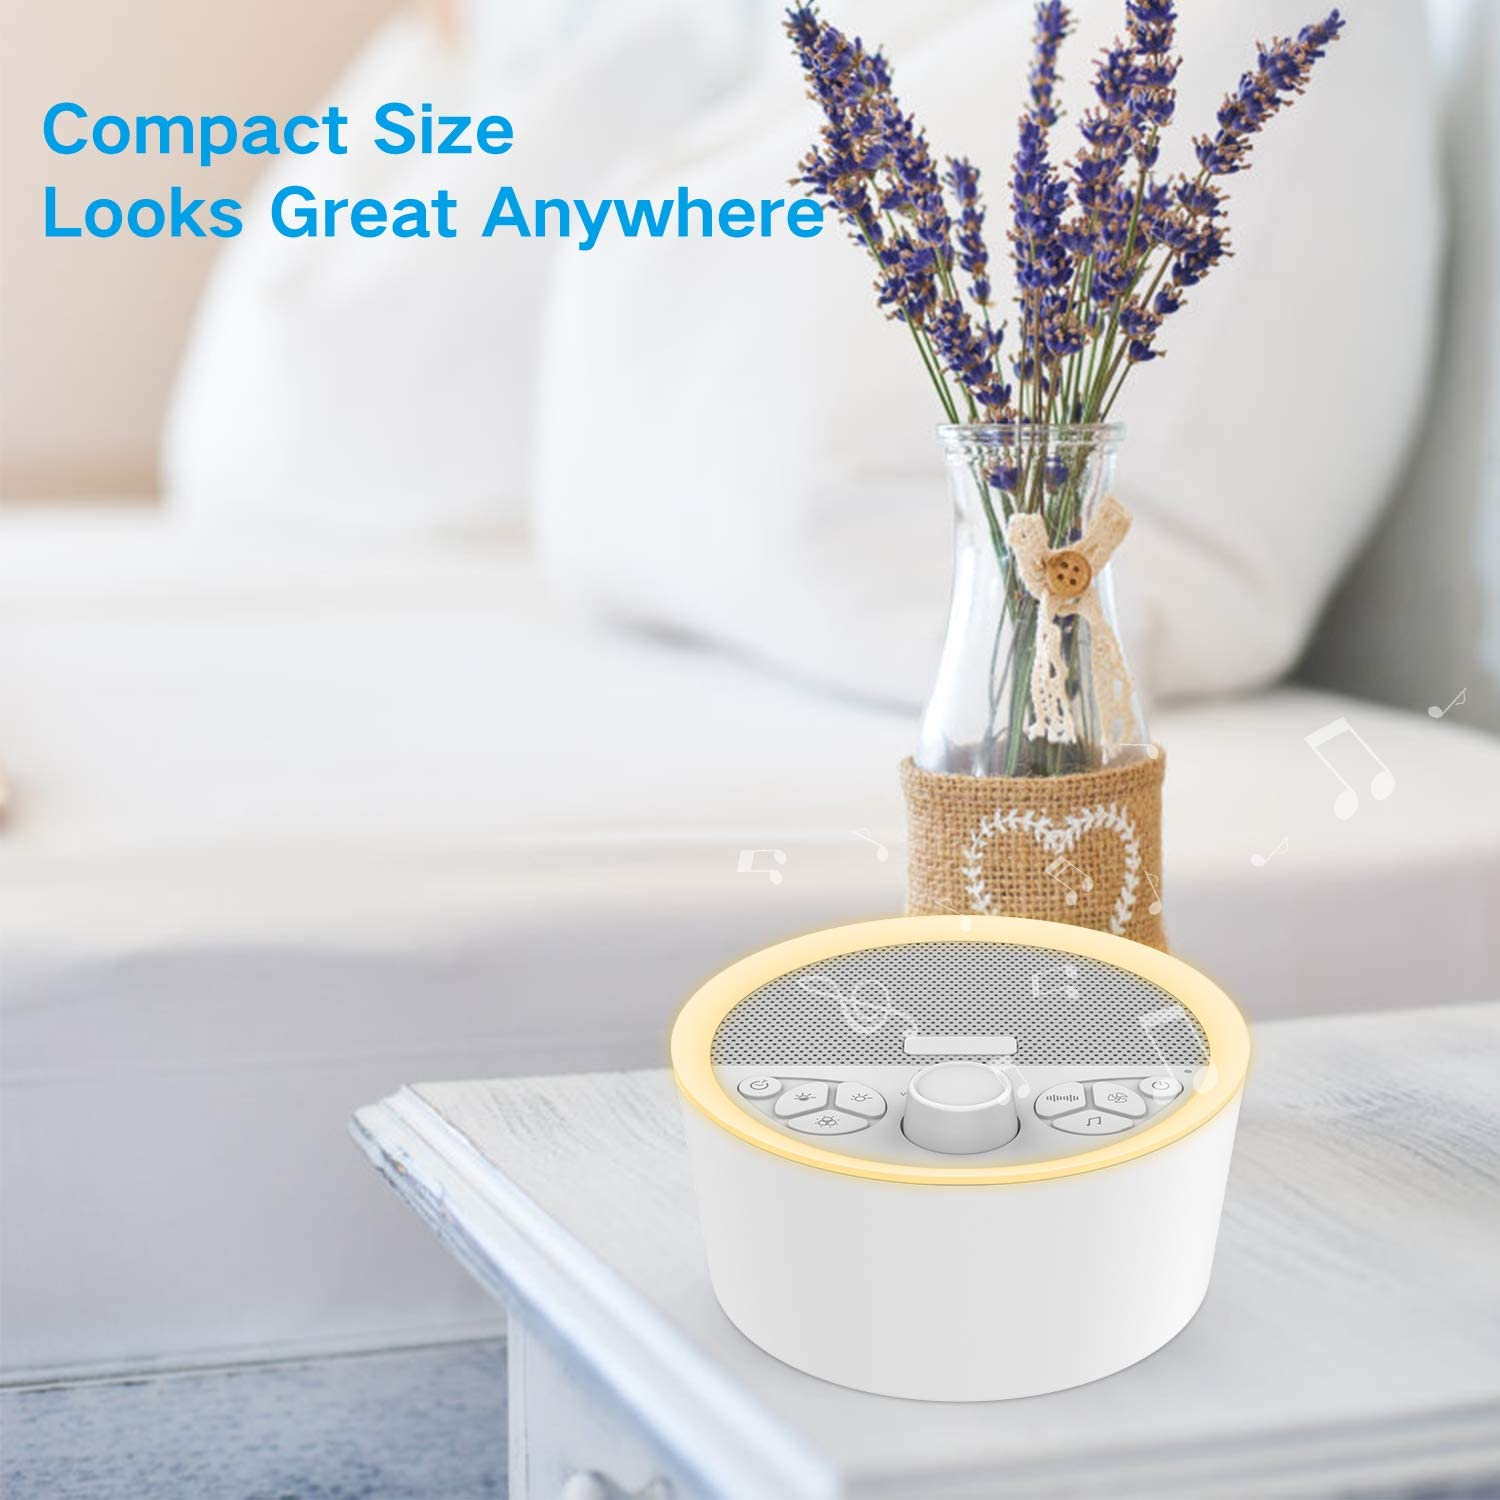 Home Office Timer /& Memory Feature Sound Machine for Baby /& Adults 14 High Fidelity Sleep Machine Soundtracks White Noise Machine with Baby Night Light for Sleeping